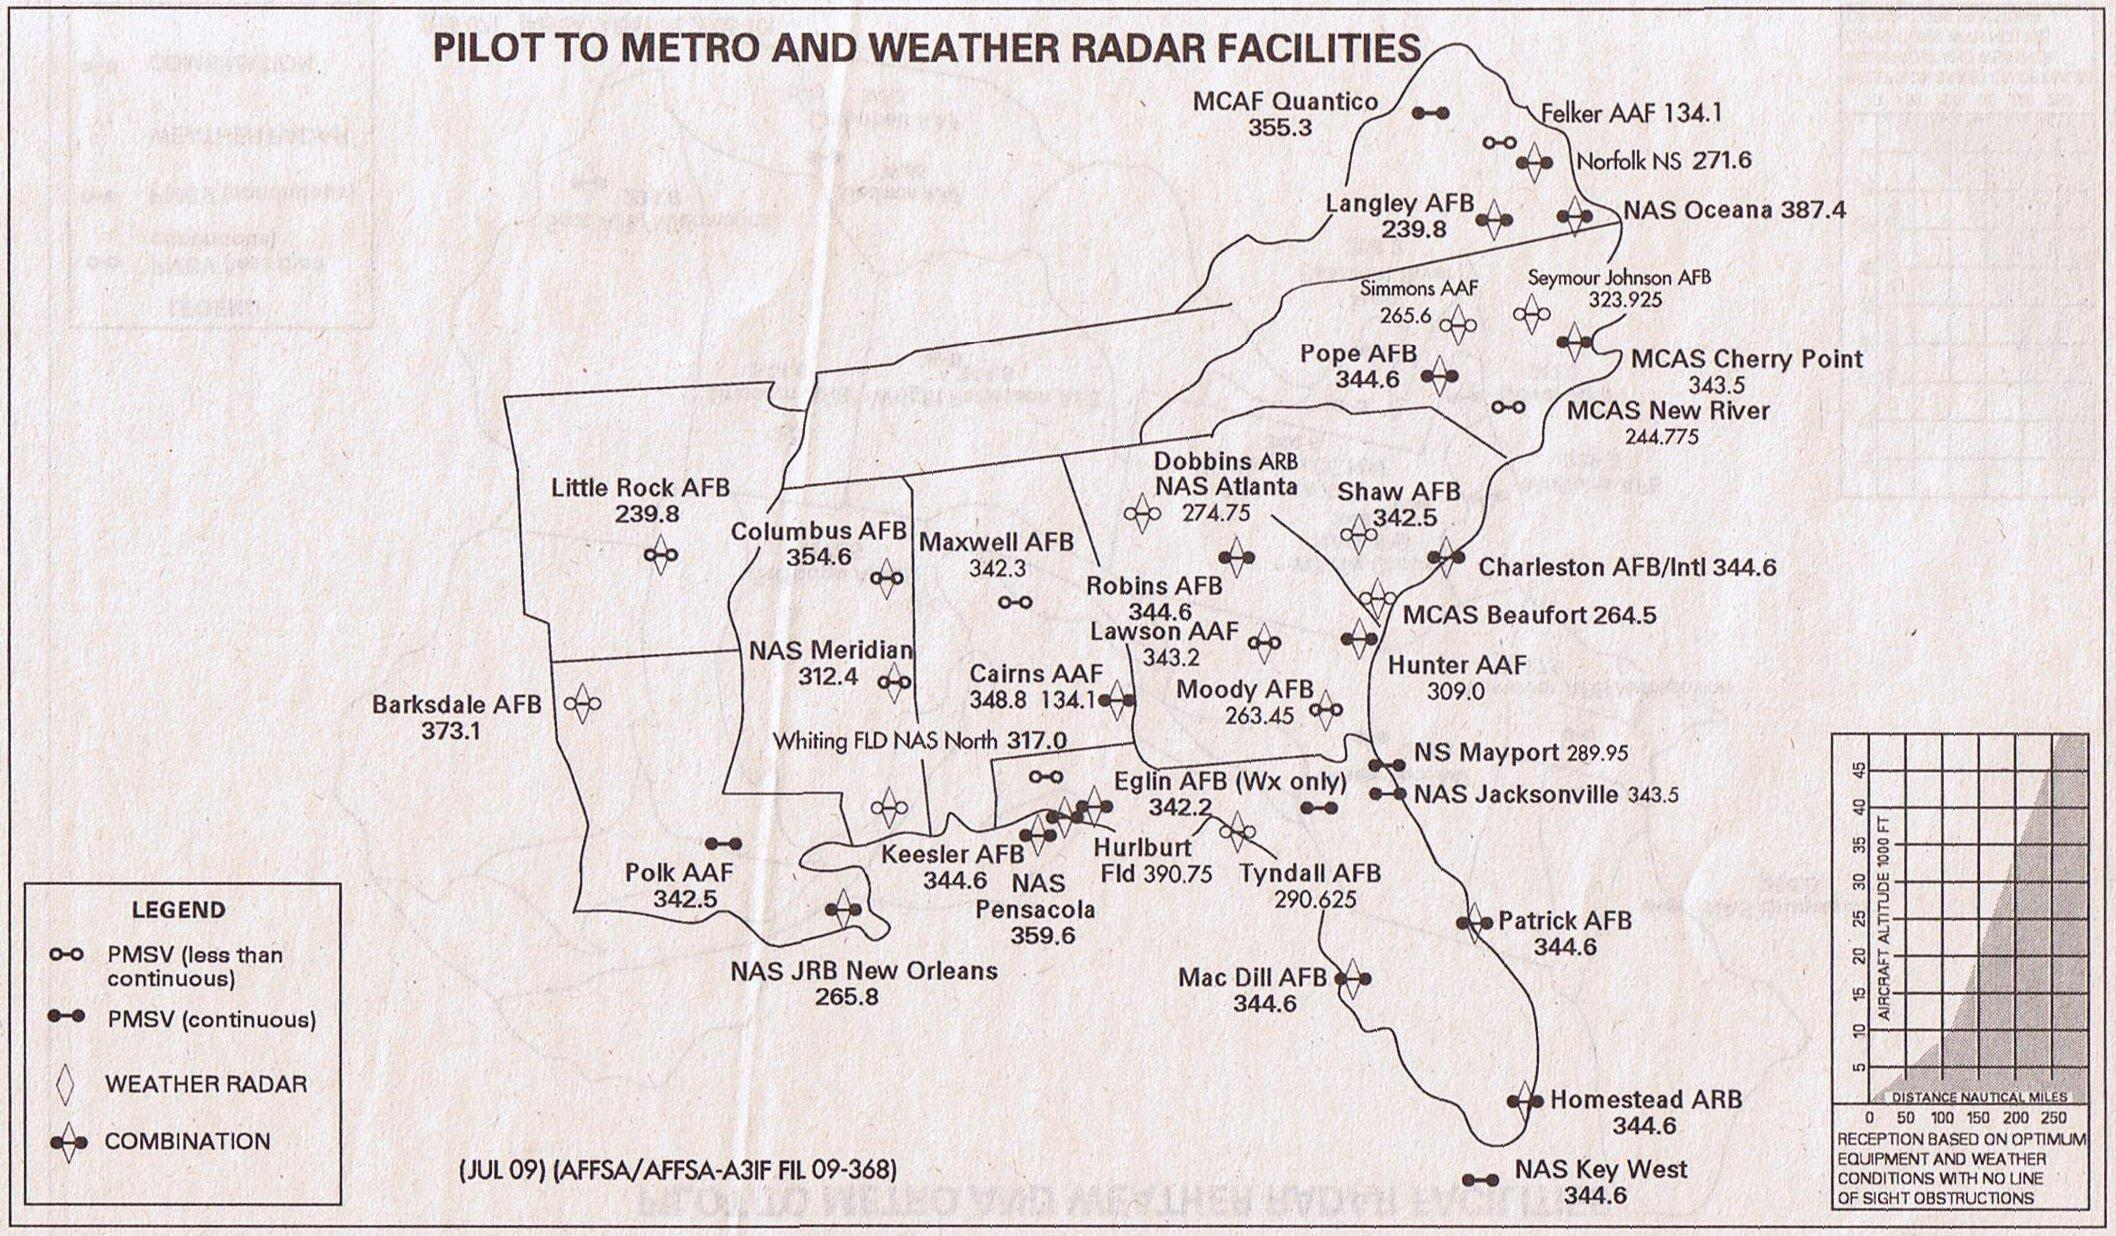 Pilot To Metro and Weather Service Information